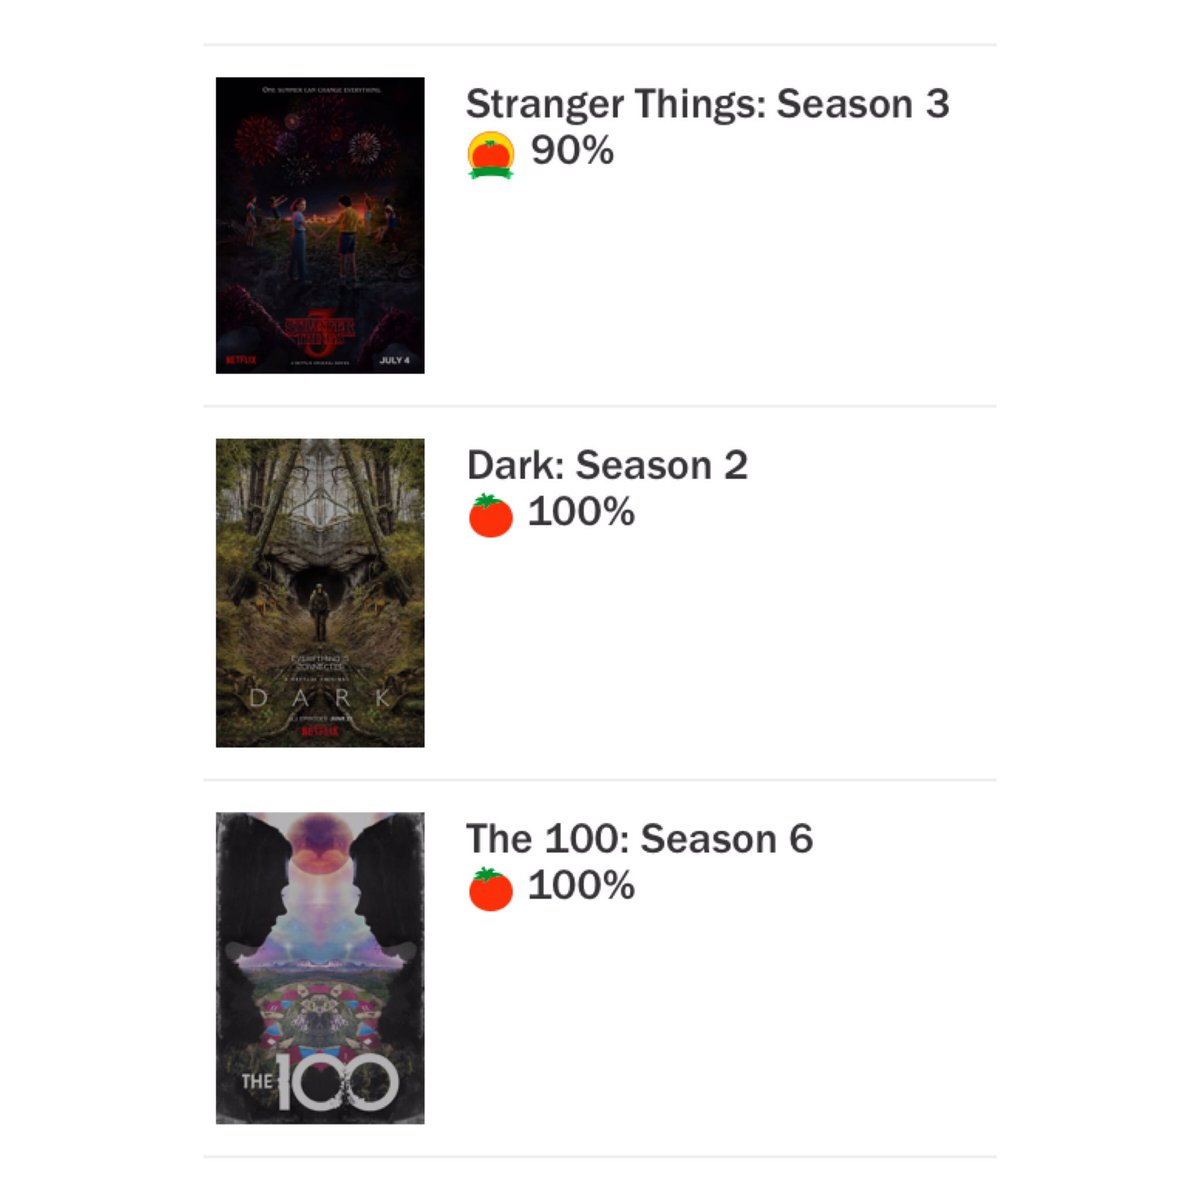 #The100 is currently the third most popular show on @RottenTomatoes, with Season 6 earning a 100% score! See more: rottentomatoes.com/browse/tv-list… (credit to: @The100Brasil)